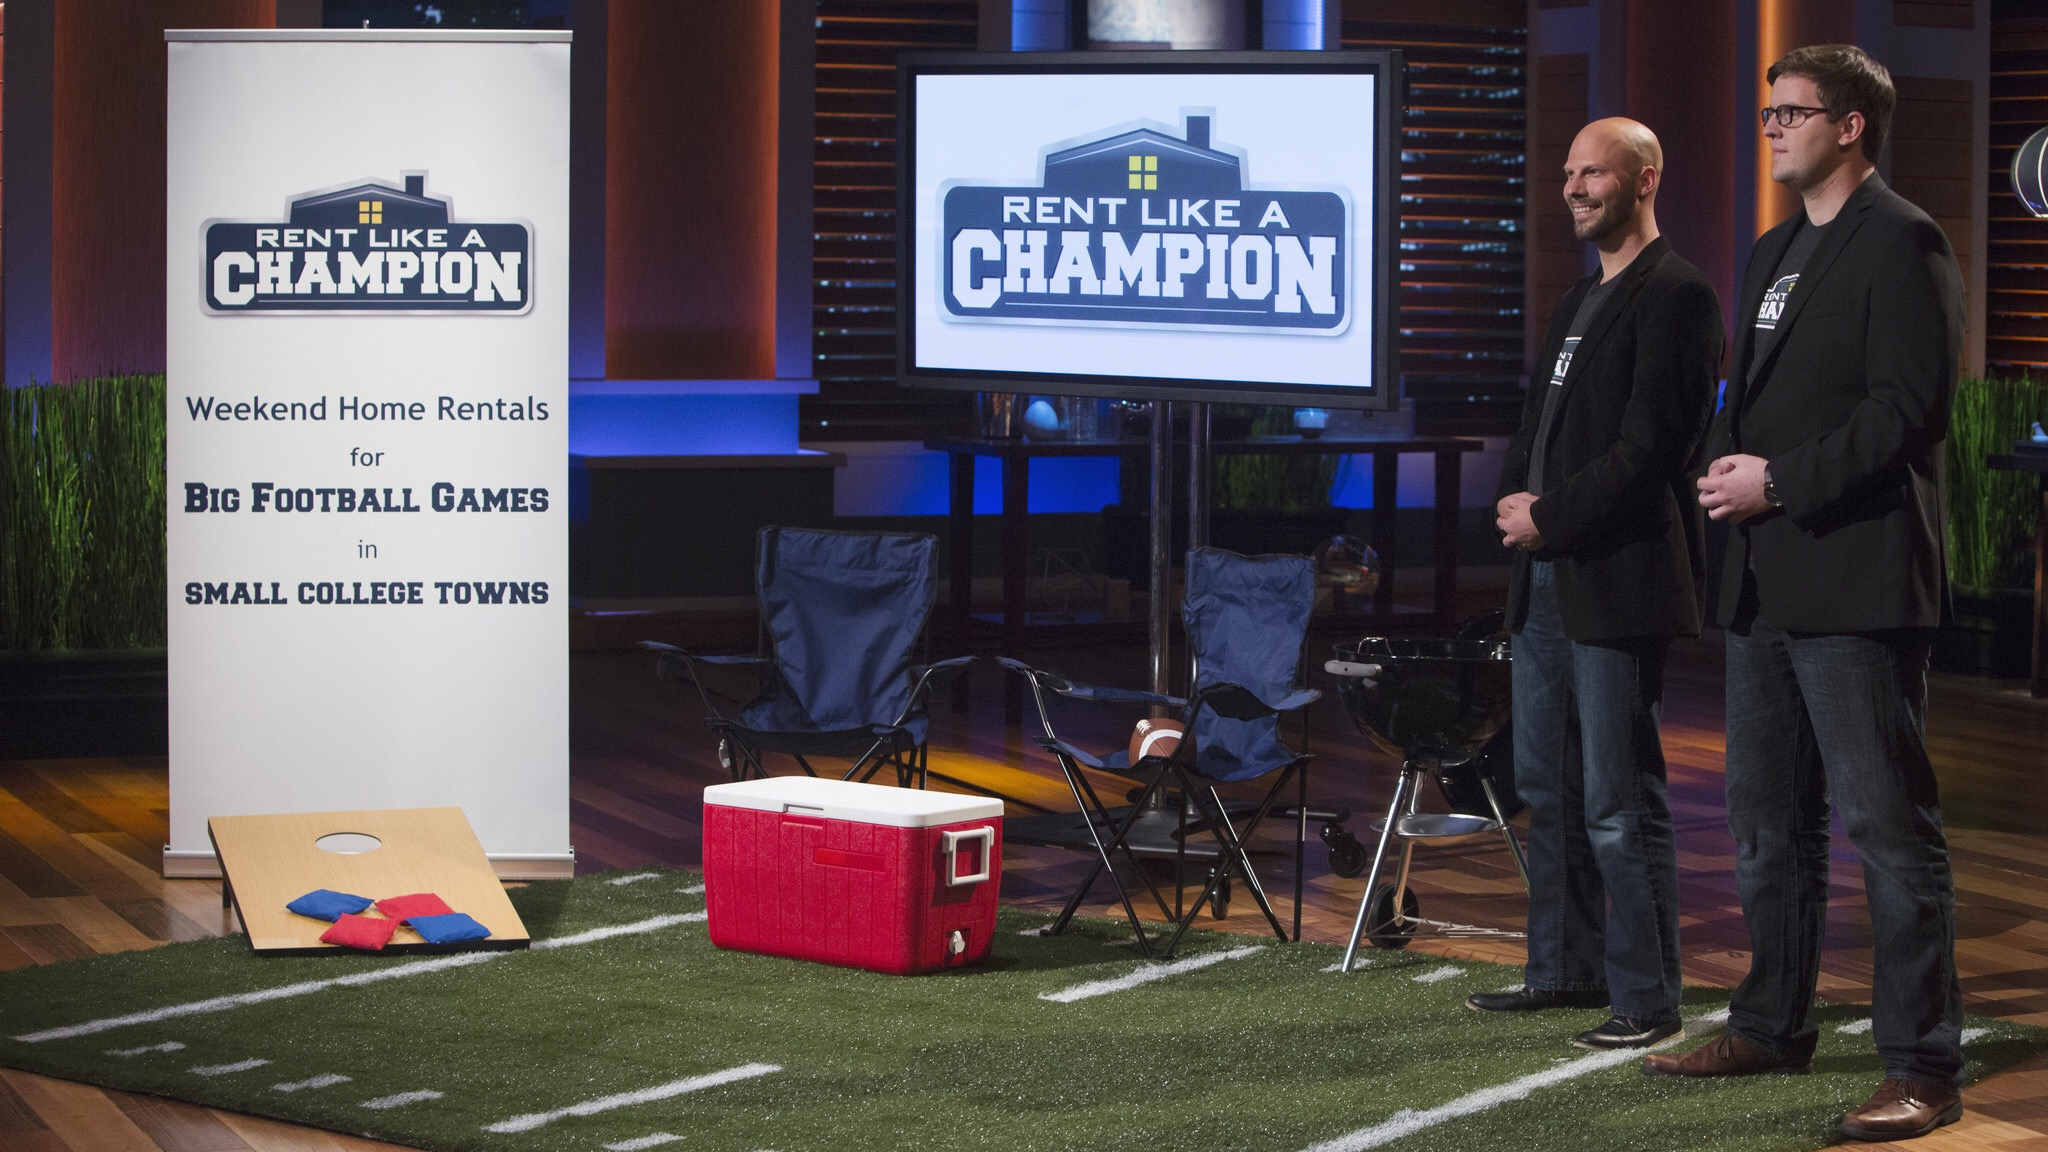 Drew and Mike appeared on Shark Tank in 2015 and won an investment from Mark Cuban and Chris Sacca